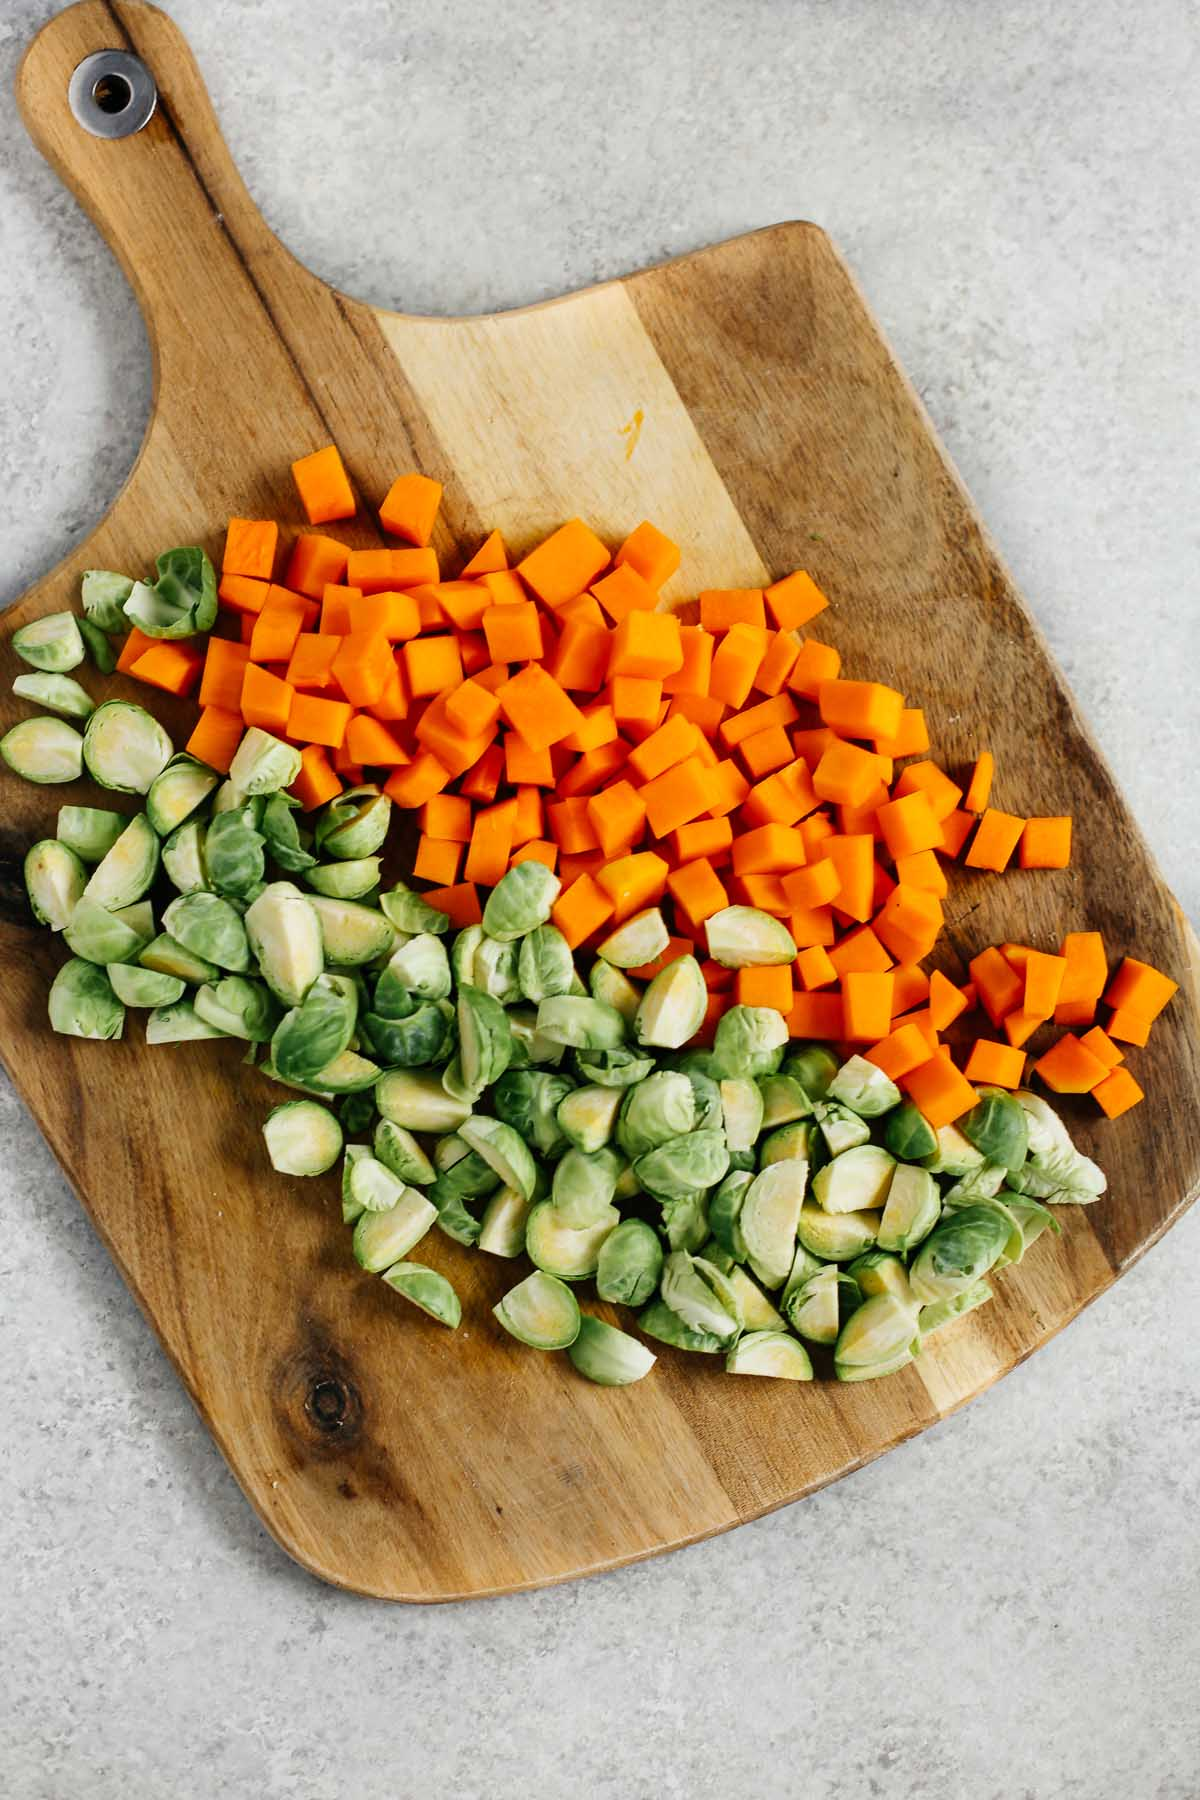 Overhead image of a cutting board with diced butternut squash and quartered Brussels sprouts.